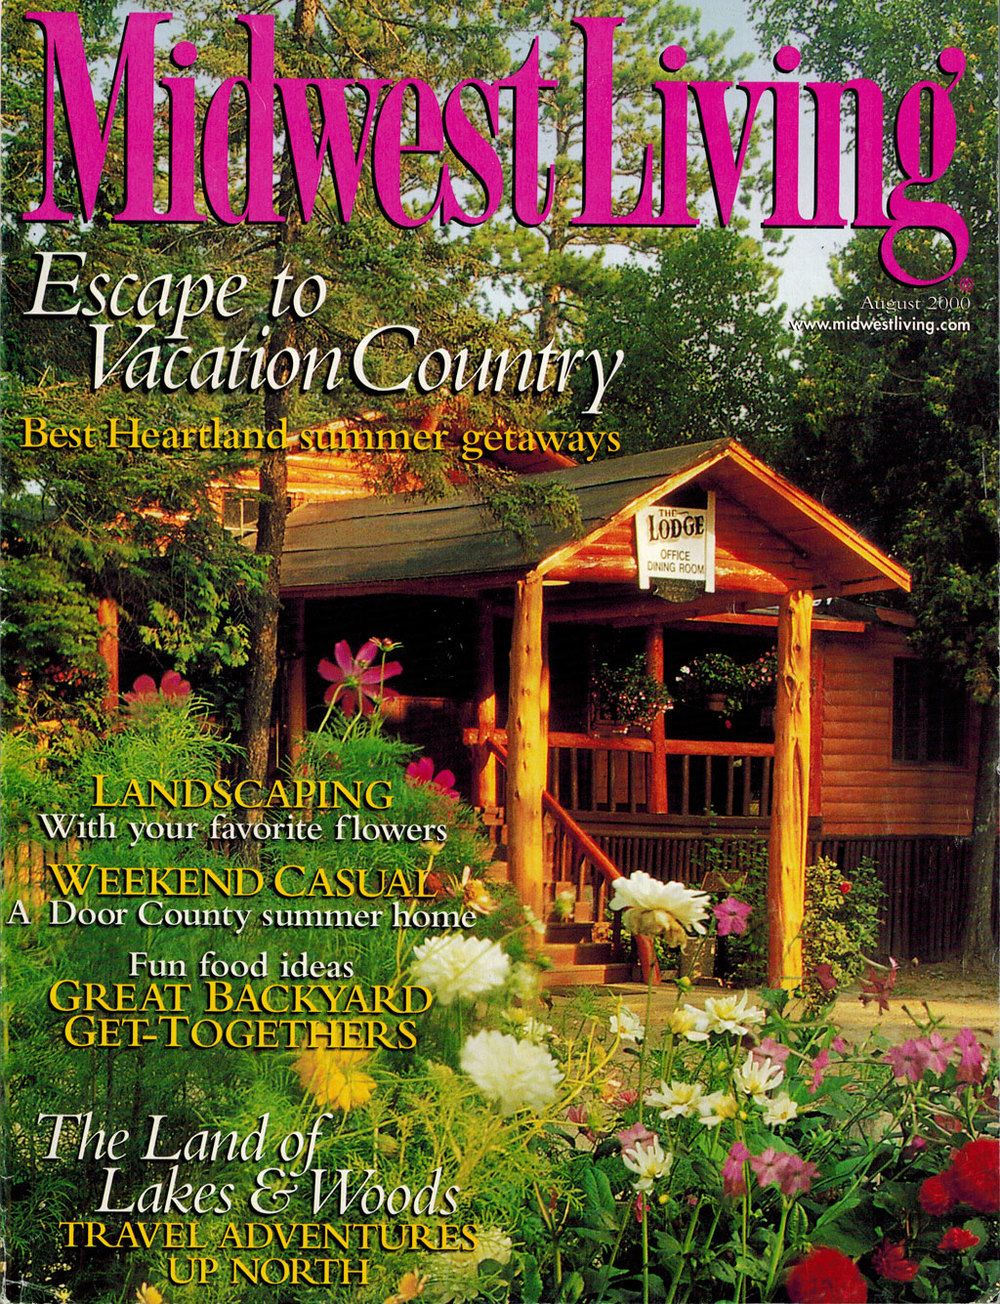 Midwest Living- August 2000- cover story